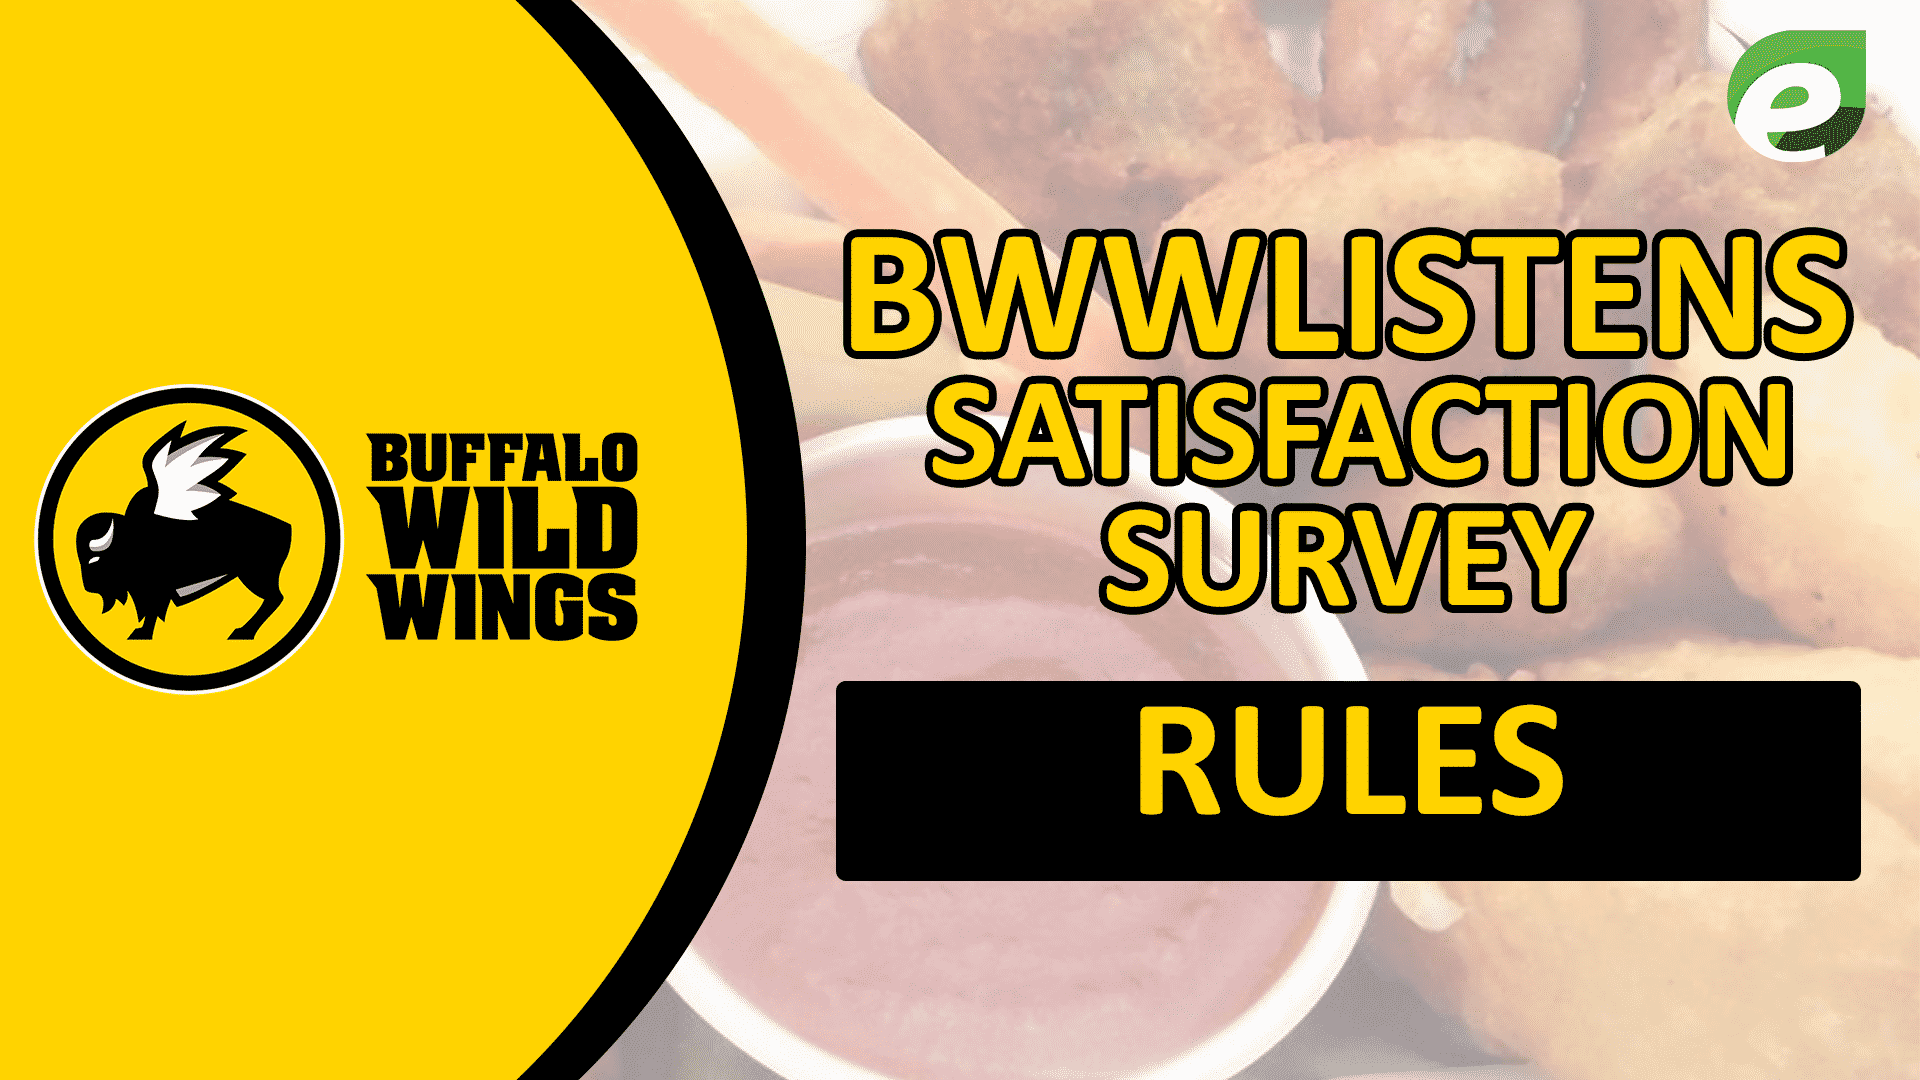 Bwwlistens survey Redemption code